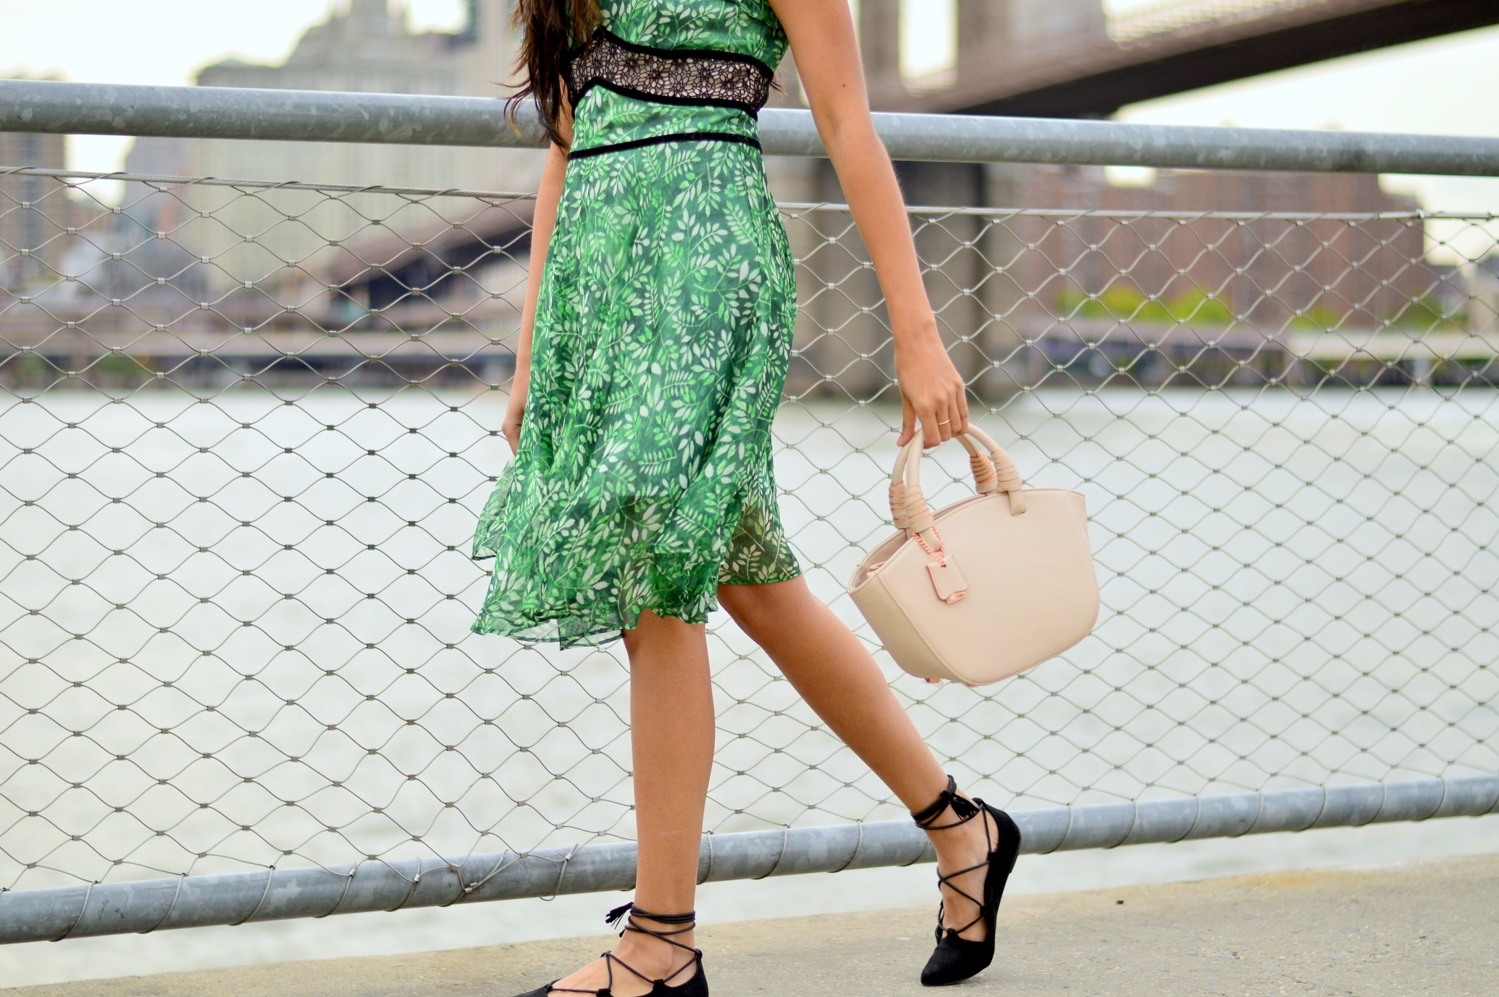 laceup-flats-summer-sundress-brooklyn-bridge-nyc-blogger-outfit 4